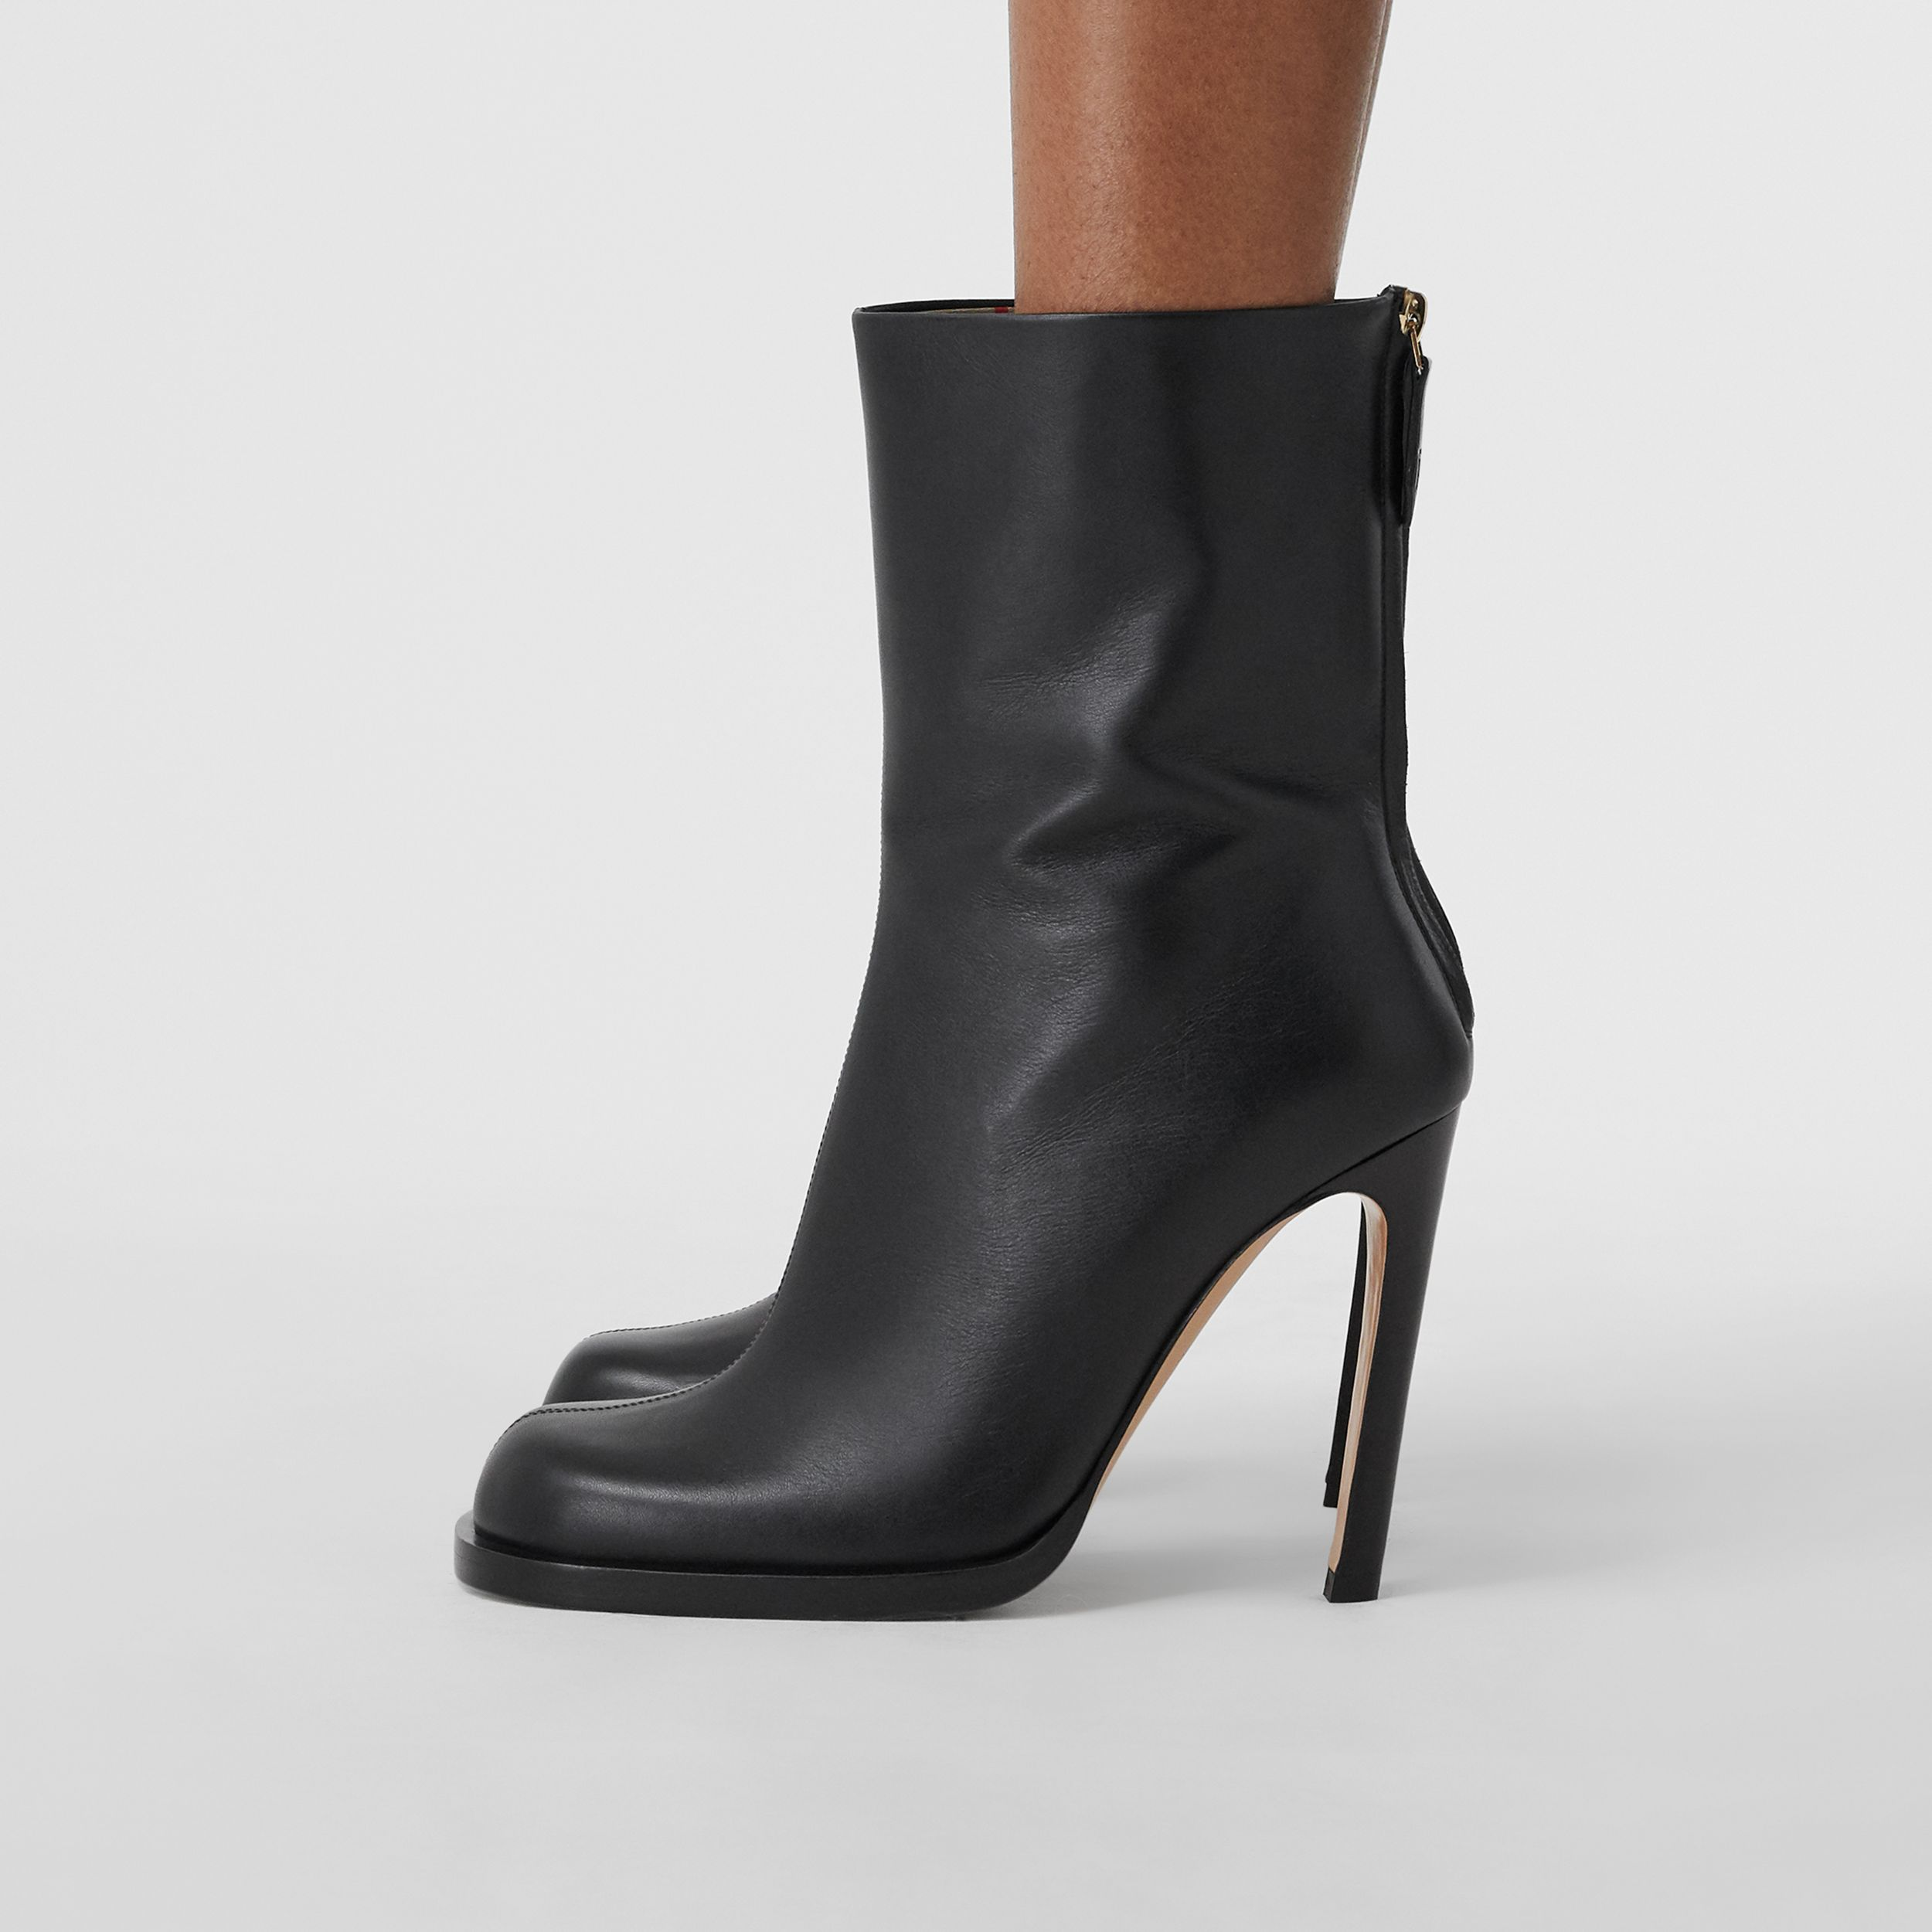 Vintage Check-lined Leather Ankle Boots in Black - Women | Burberry United States - 3